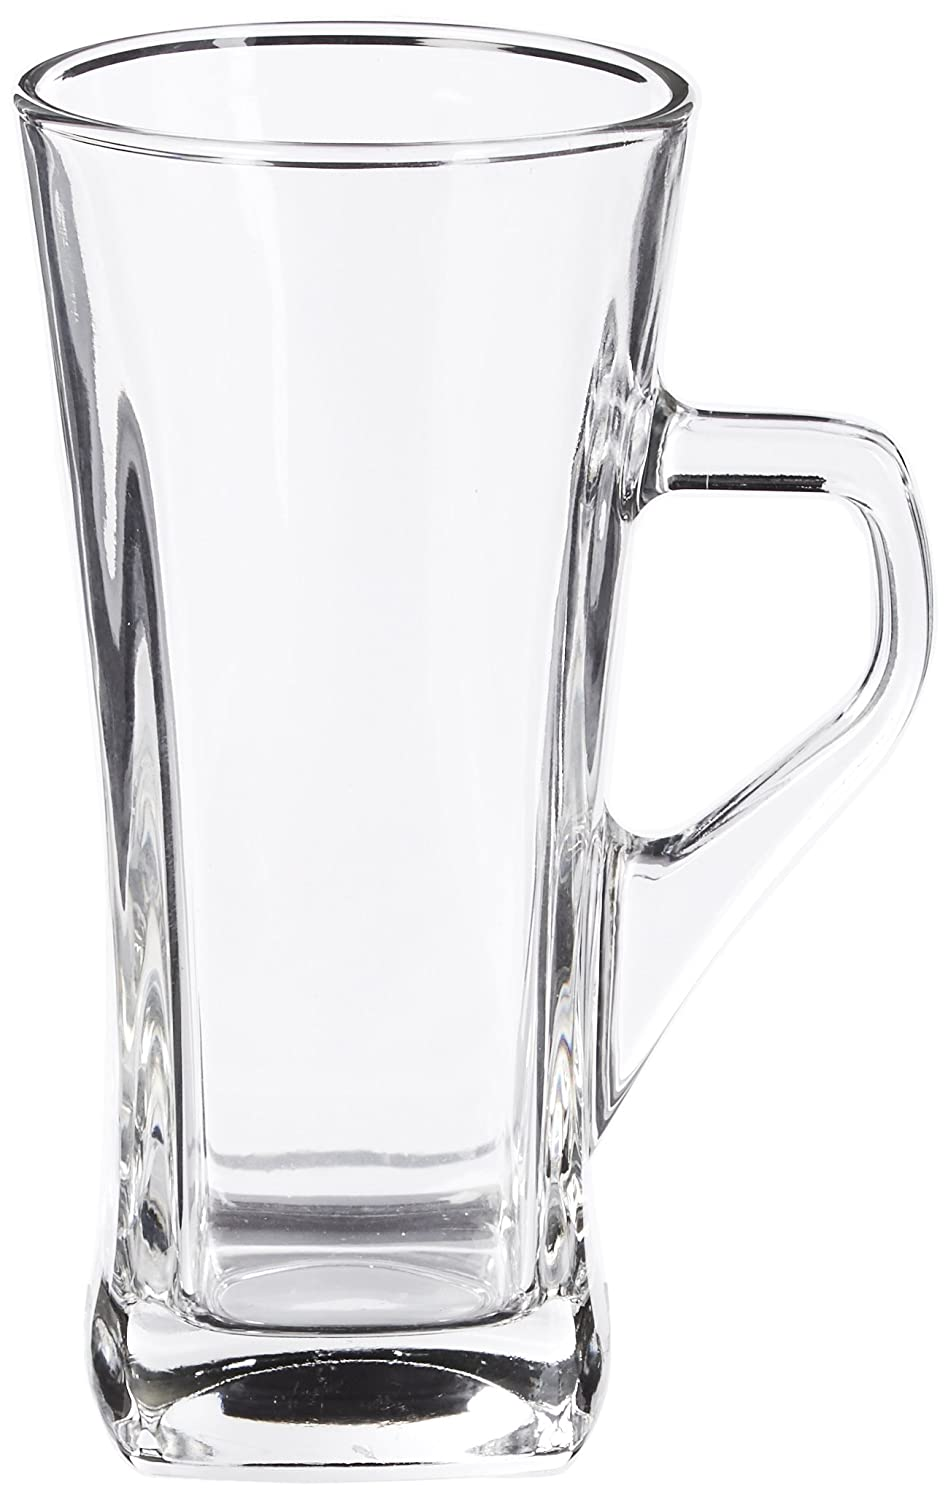 Style Setter Piazza Irish Coffee Square Mugs (Set of 4), Clear 229017-GB